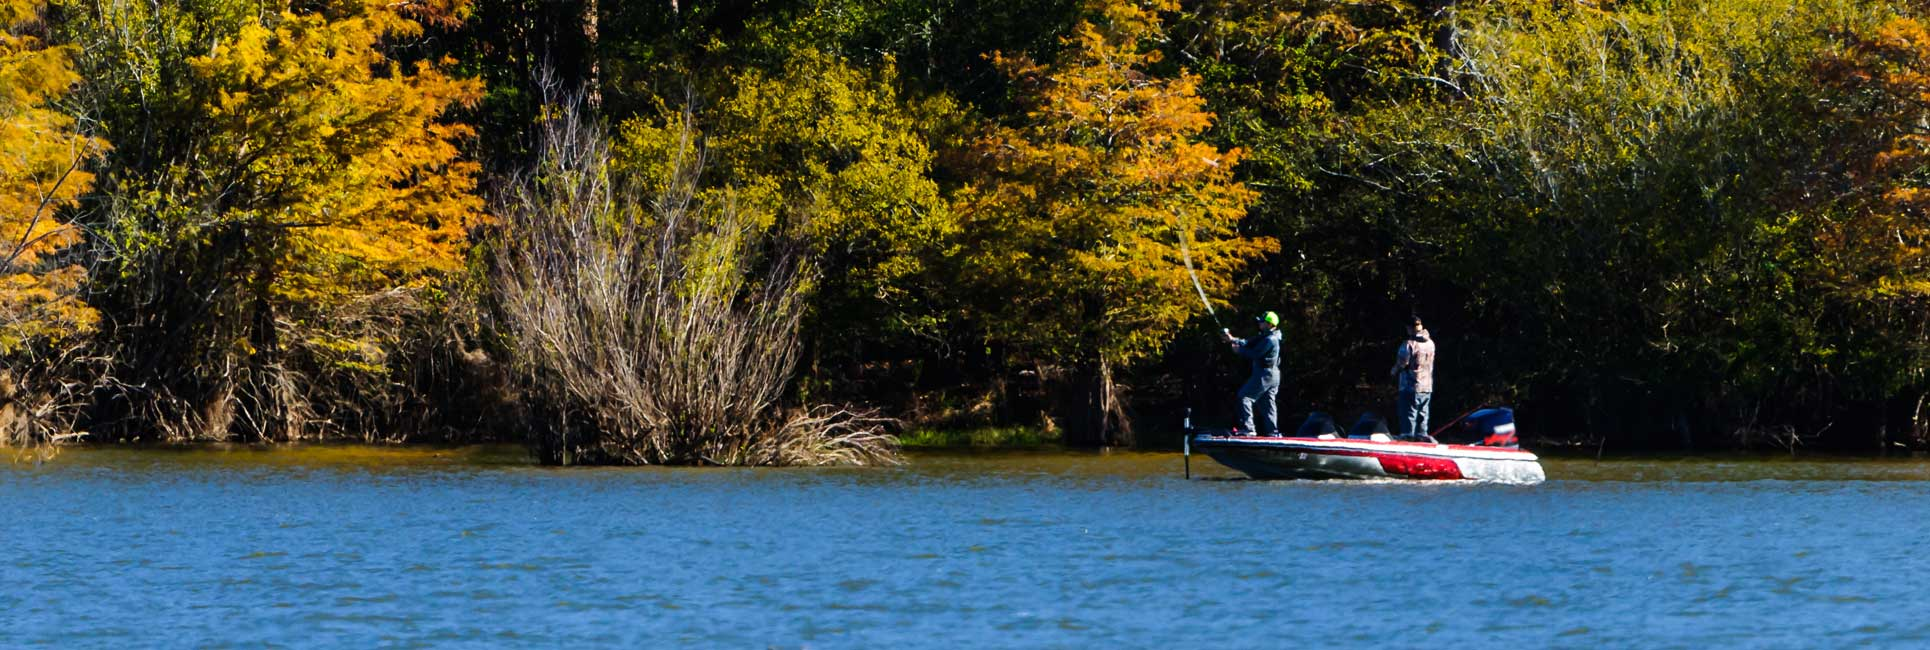 Two men fishing from a boat on Sam Rayburn Lake, Texas